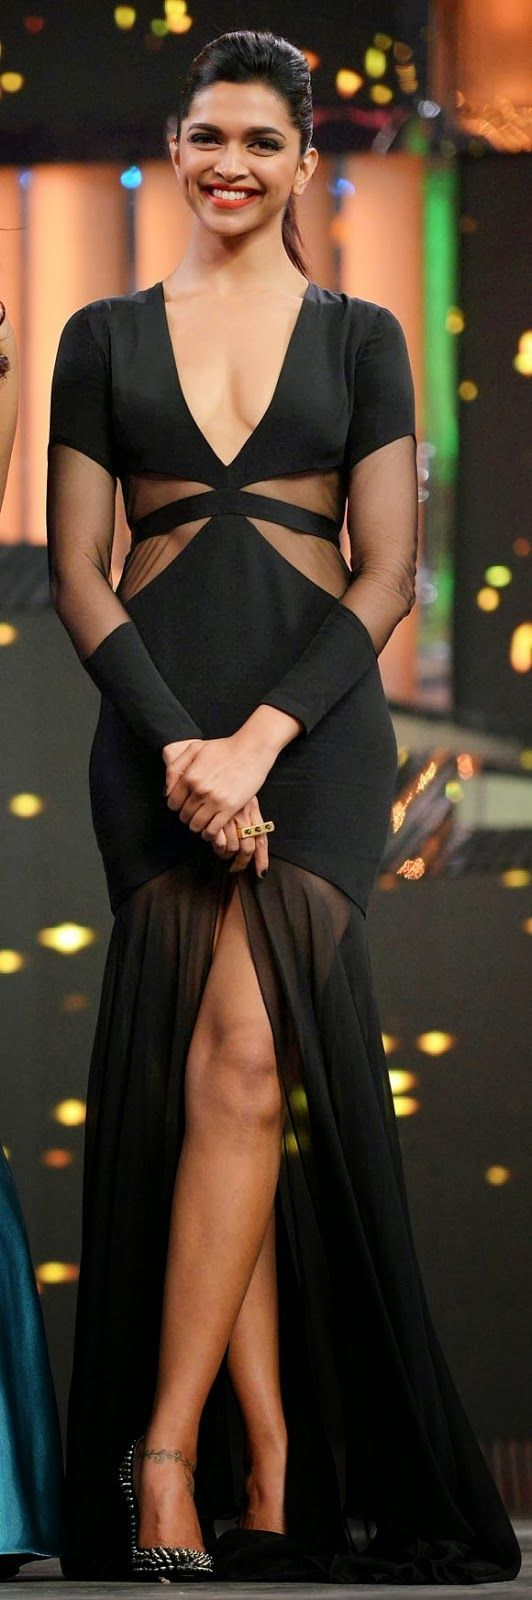 Deepika Padukon #Bollywood Celebrity in Black Dress